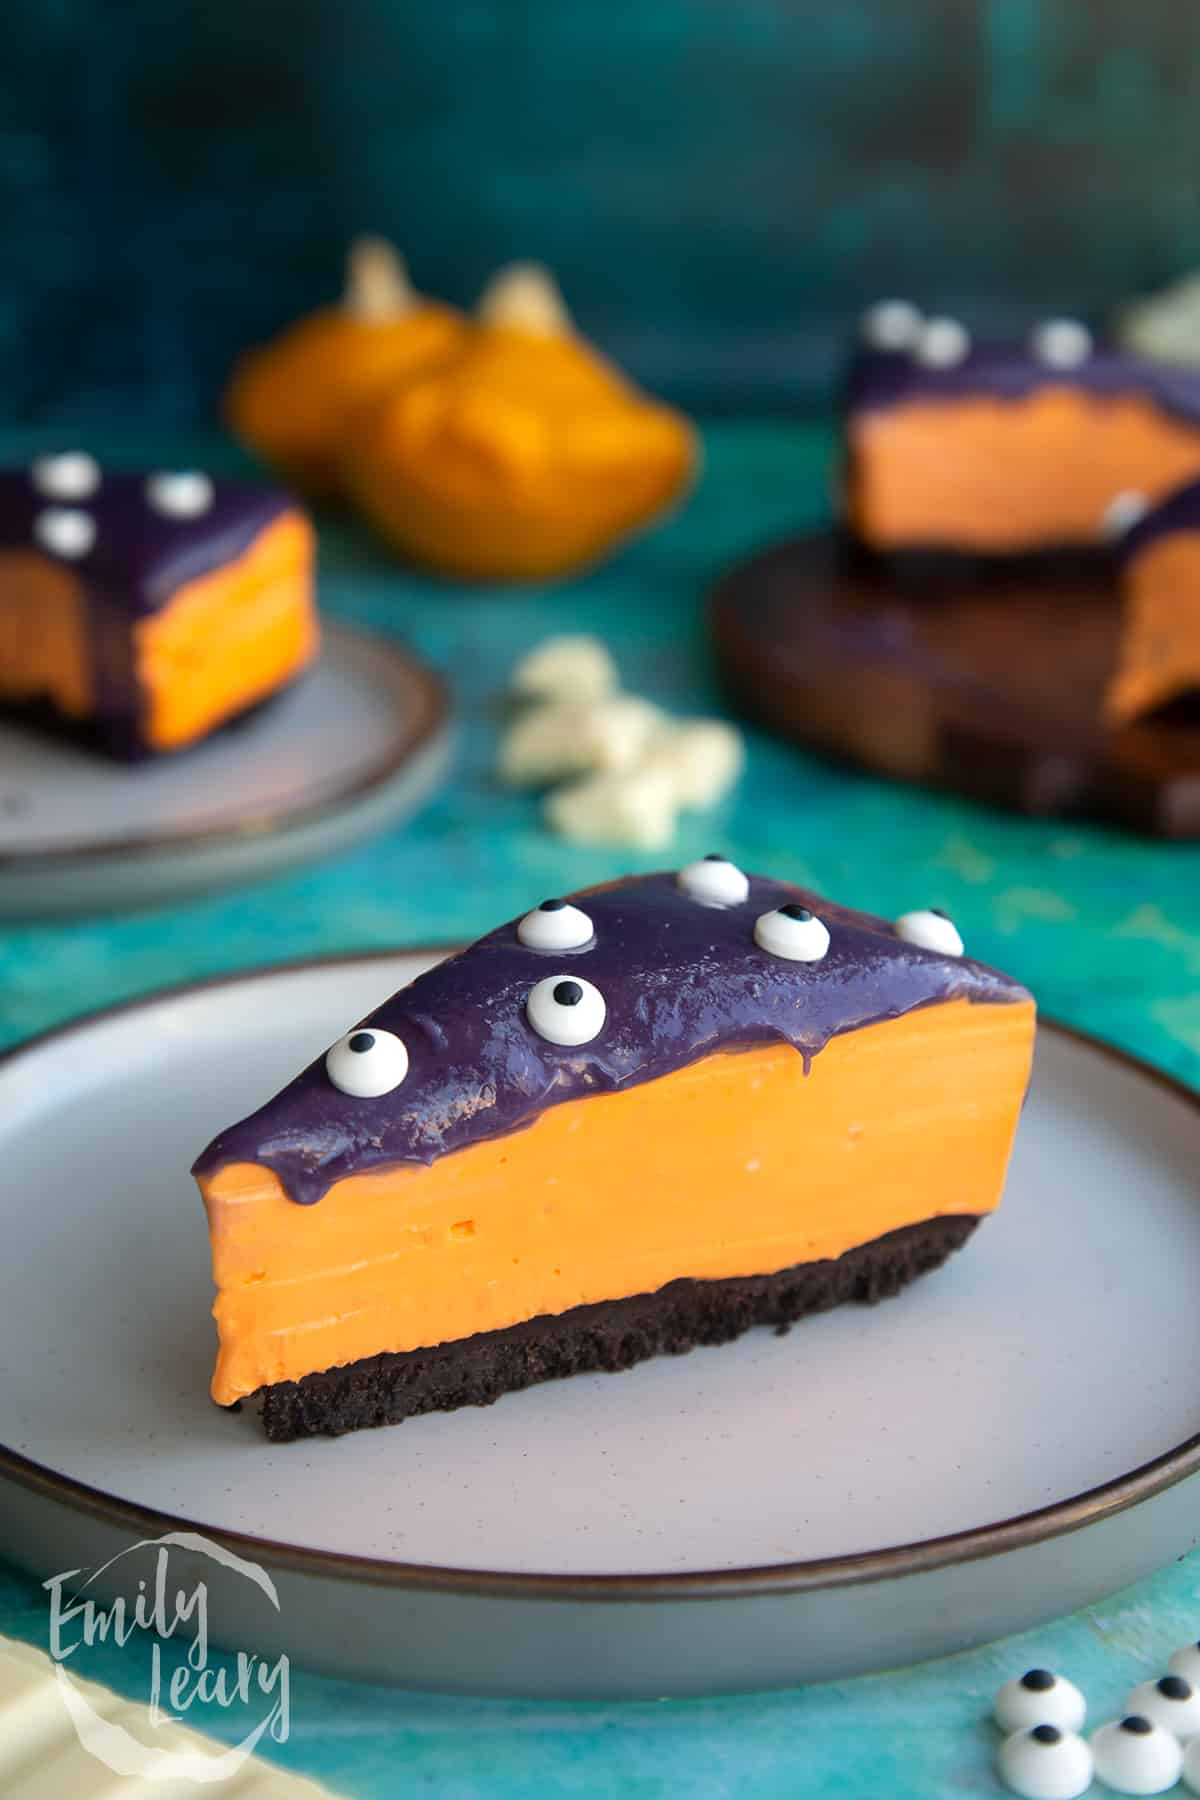 Slice of orange and strawberry Halloween cheesecake with an Oreo base on a plate.